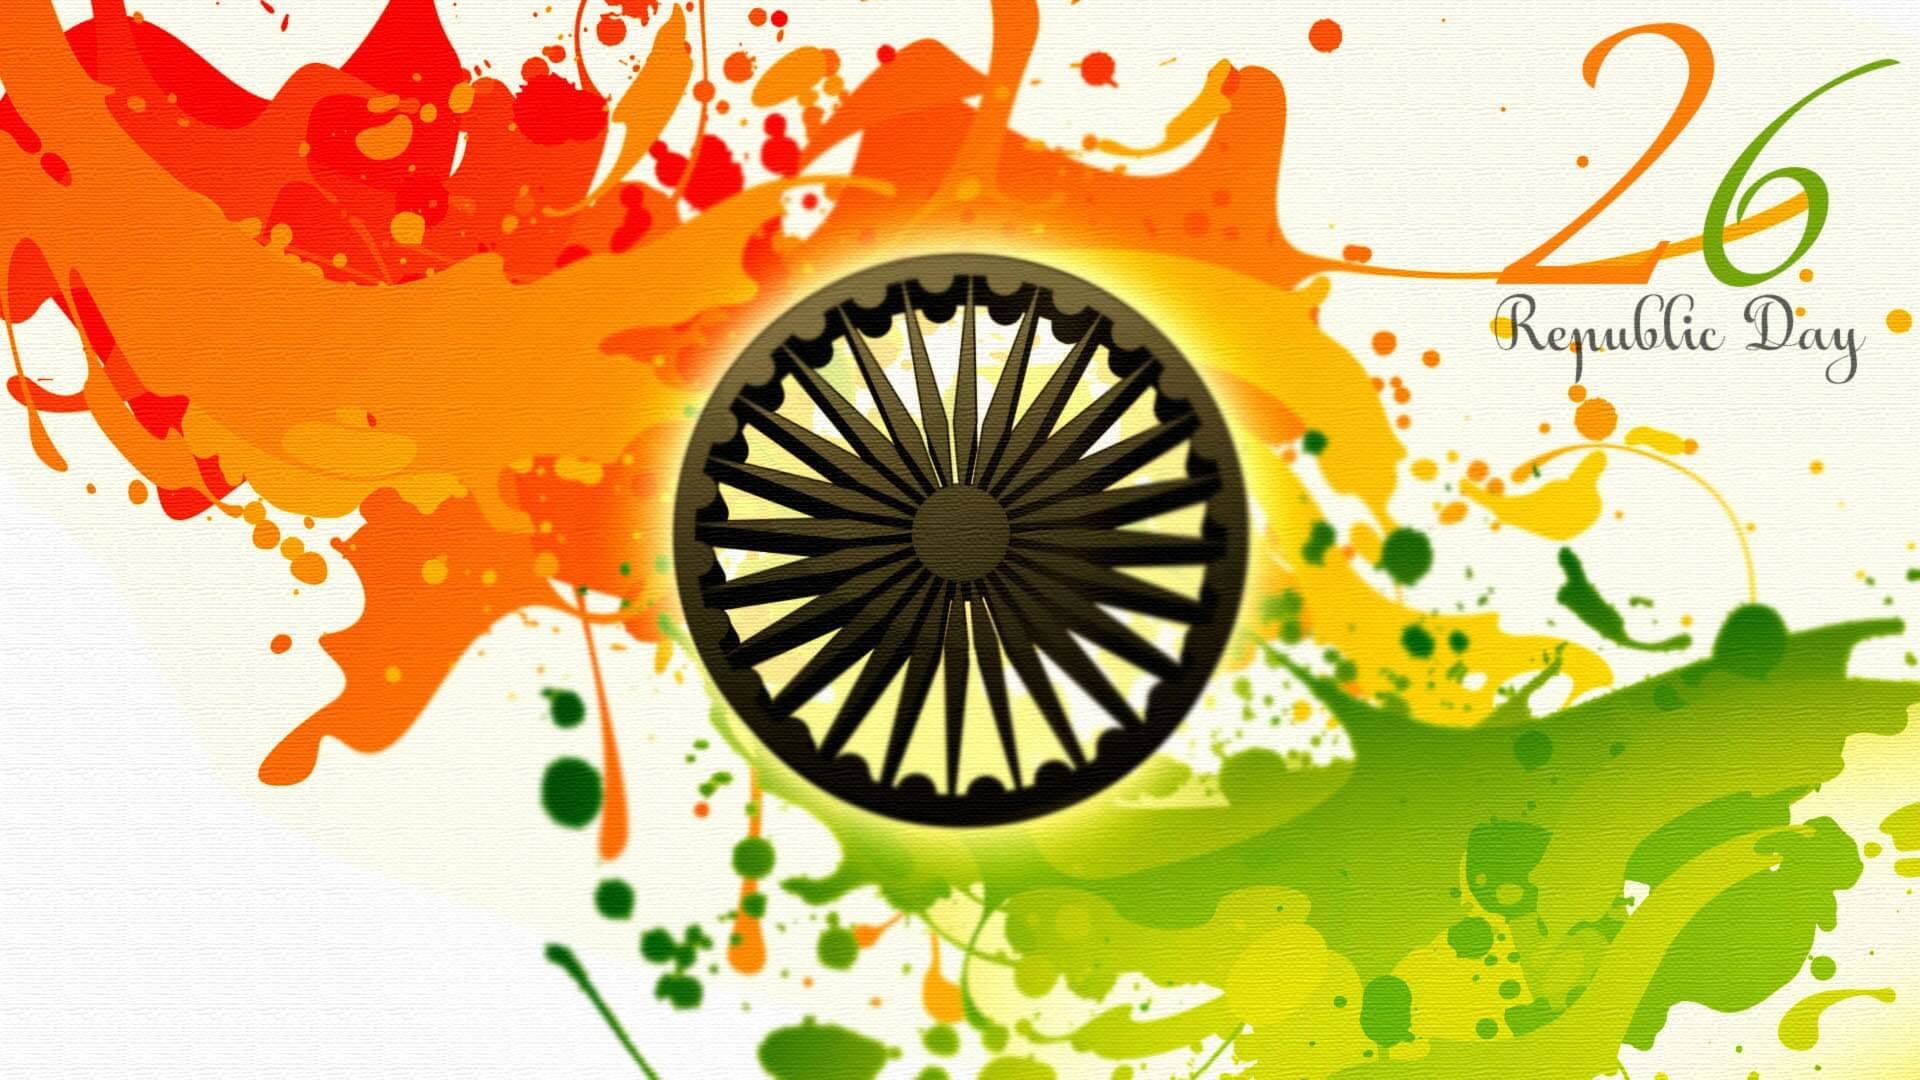 Best Republic Day India image